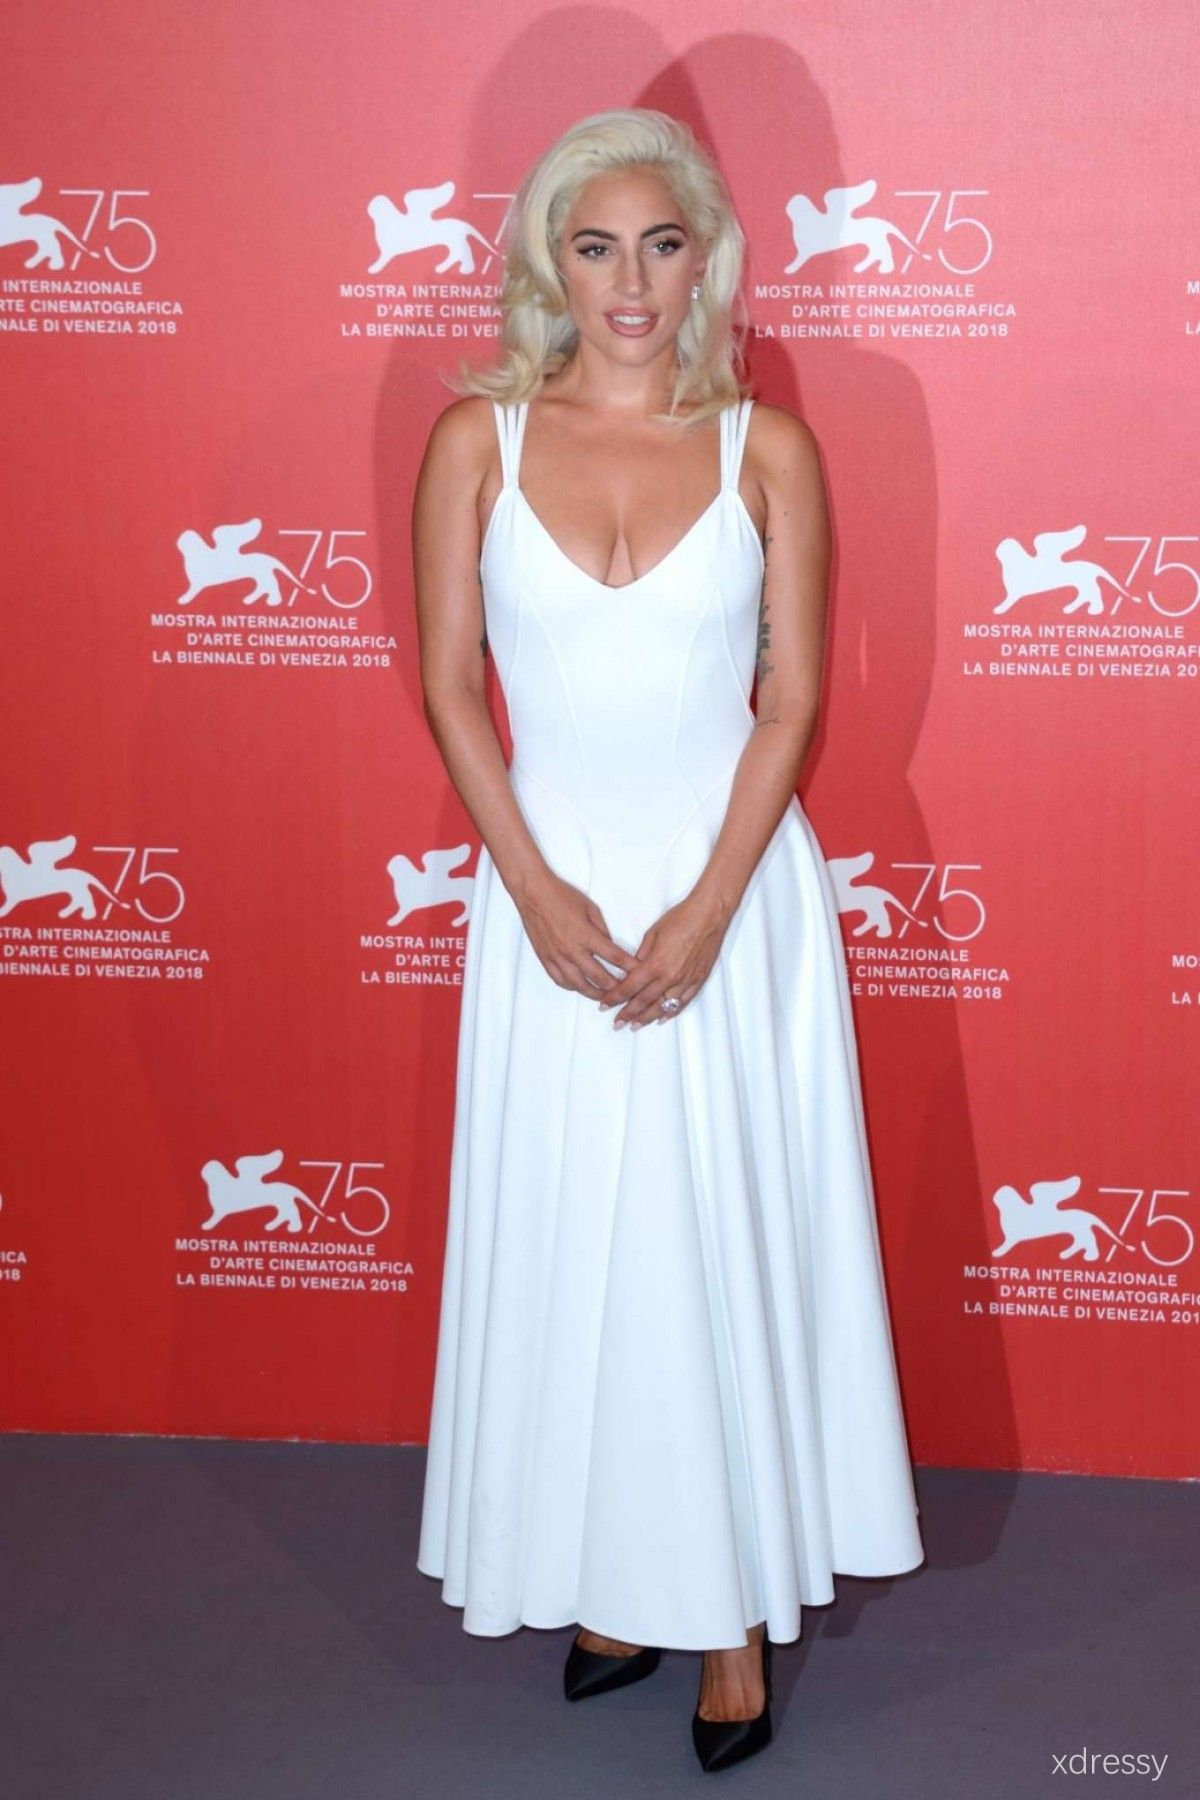 608b2b45c2 Lady Gaga White Scoop Neckline with Shoulder Straps Ankle Length Prom Party  Dress Venice Film Festival 2018 Red Carpet